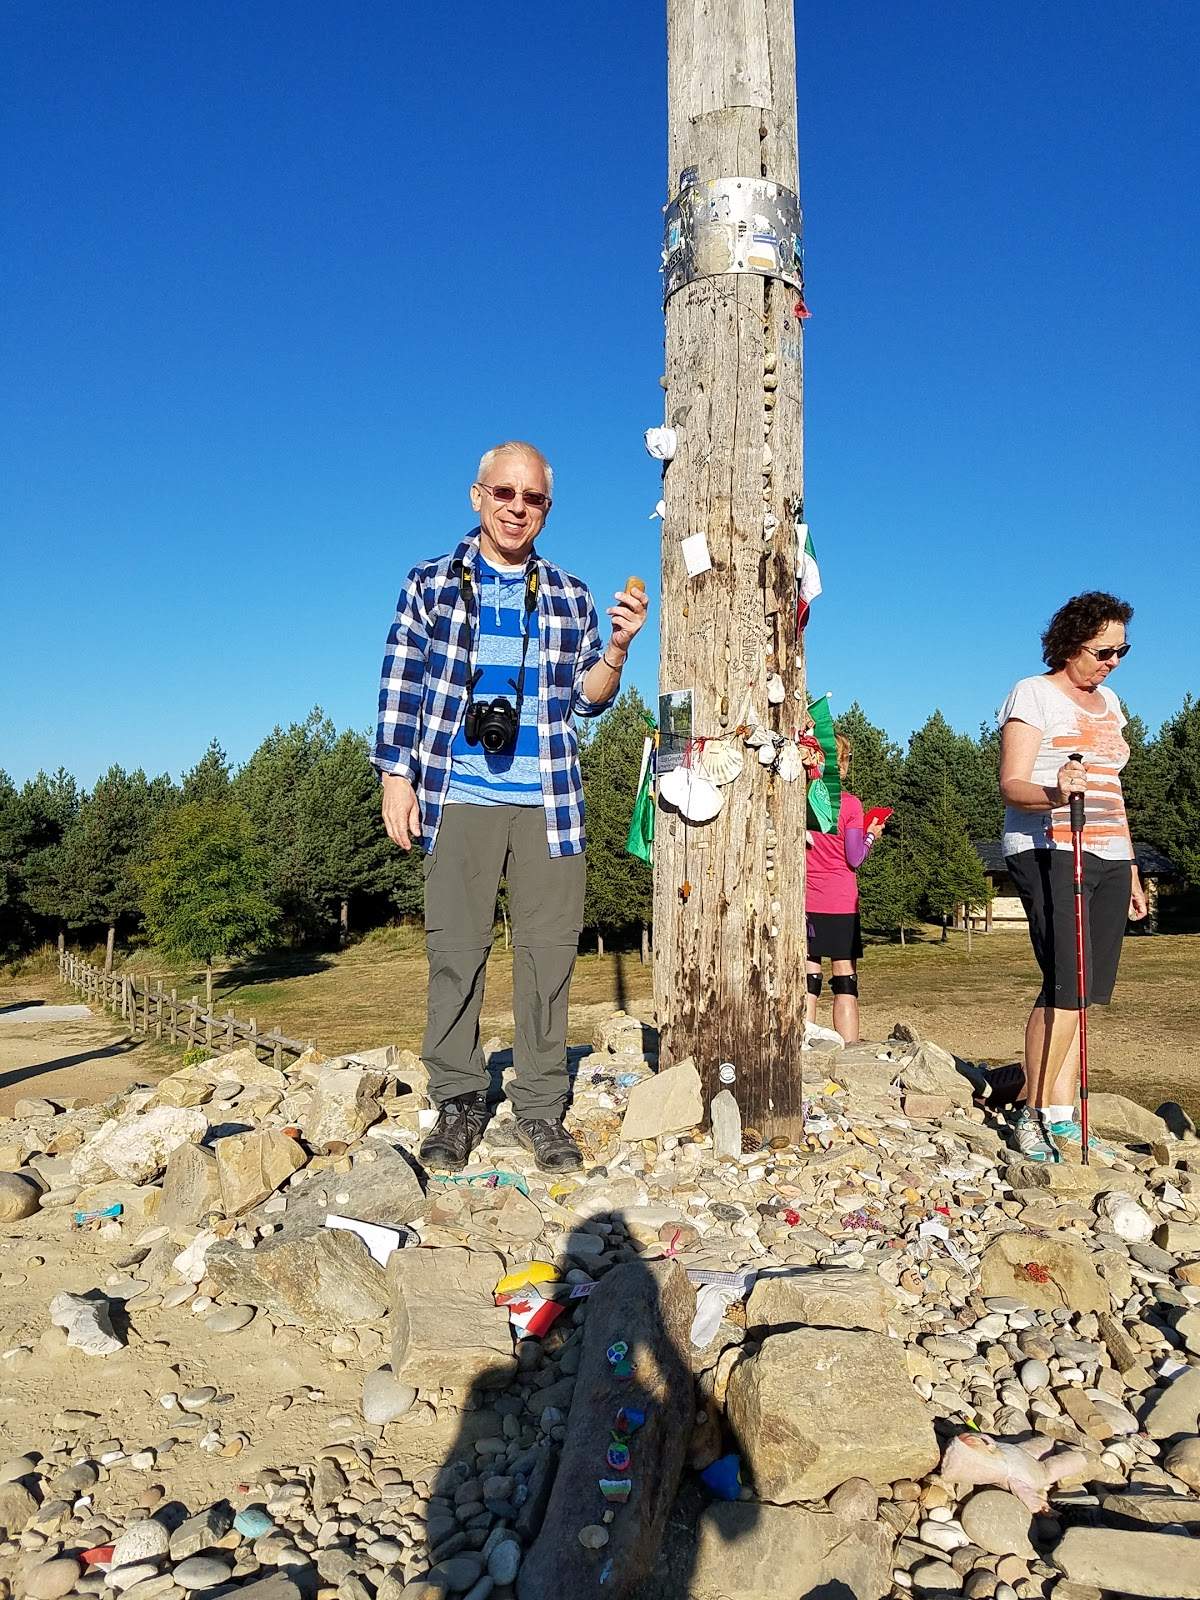 Preparing to toss my burden of stone at the Cruz de Ferro.